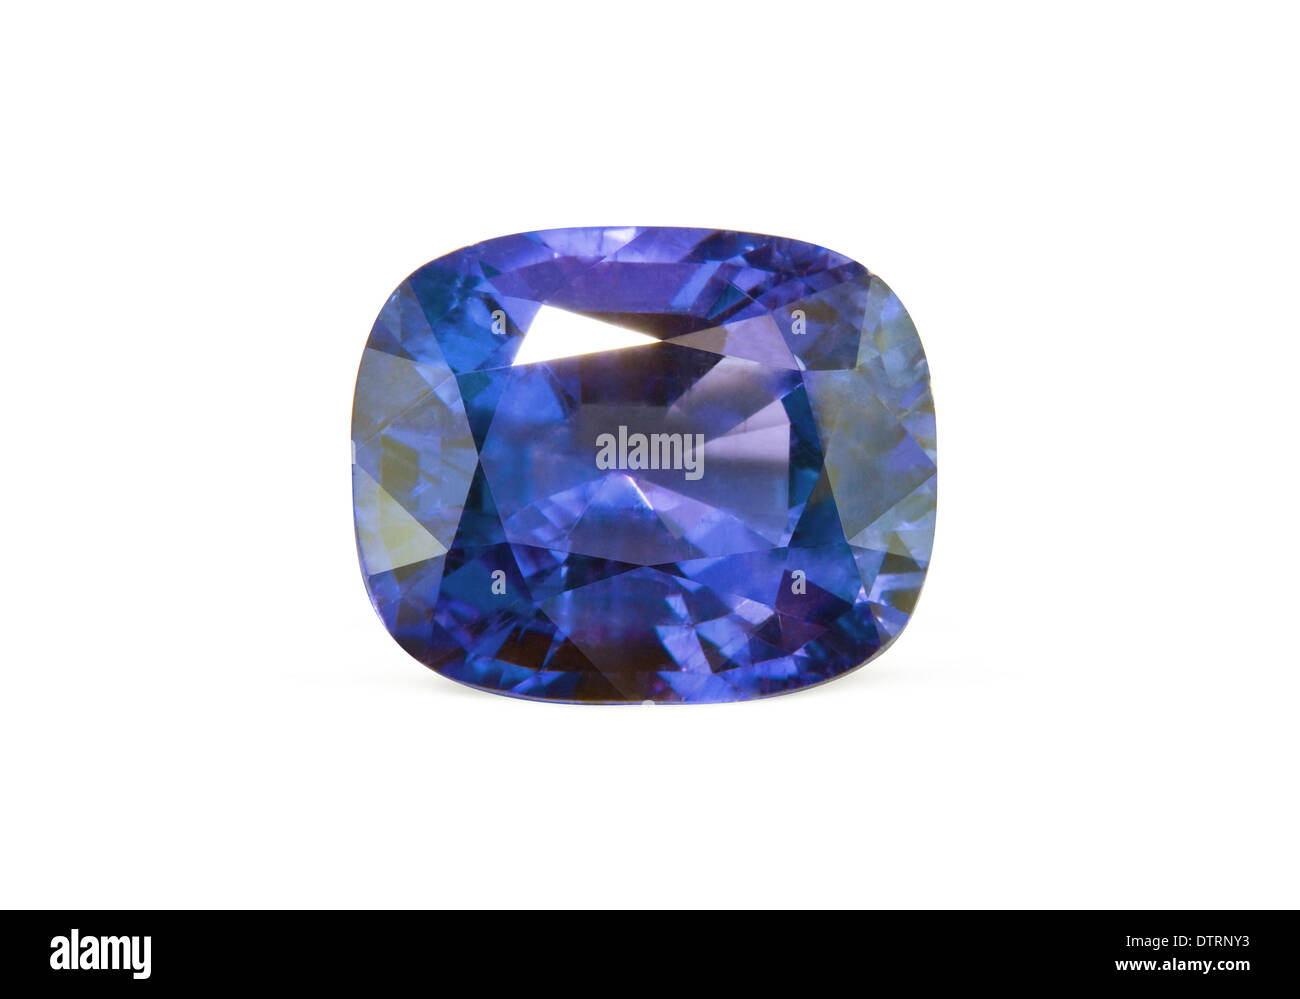 lapis on gem nayrahbbt purple art and tanzanite gems agate crystal by